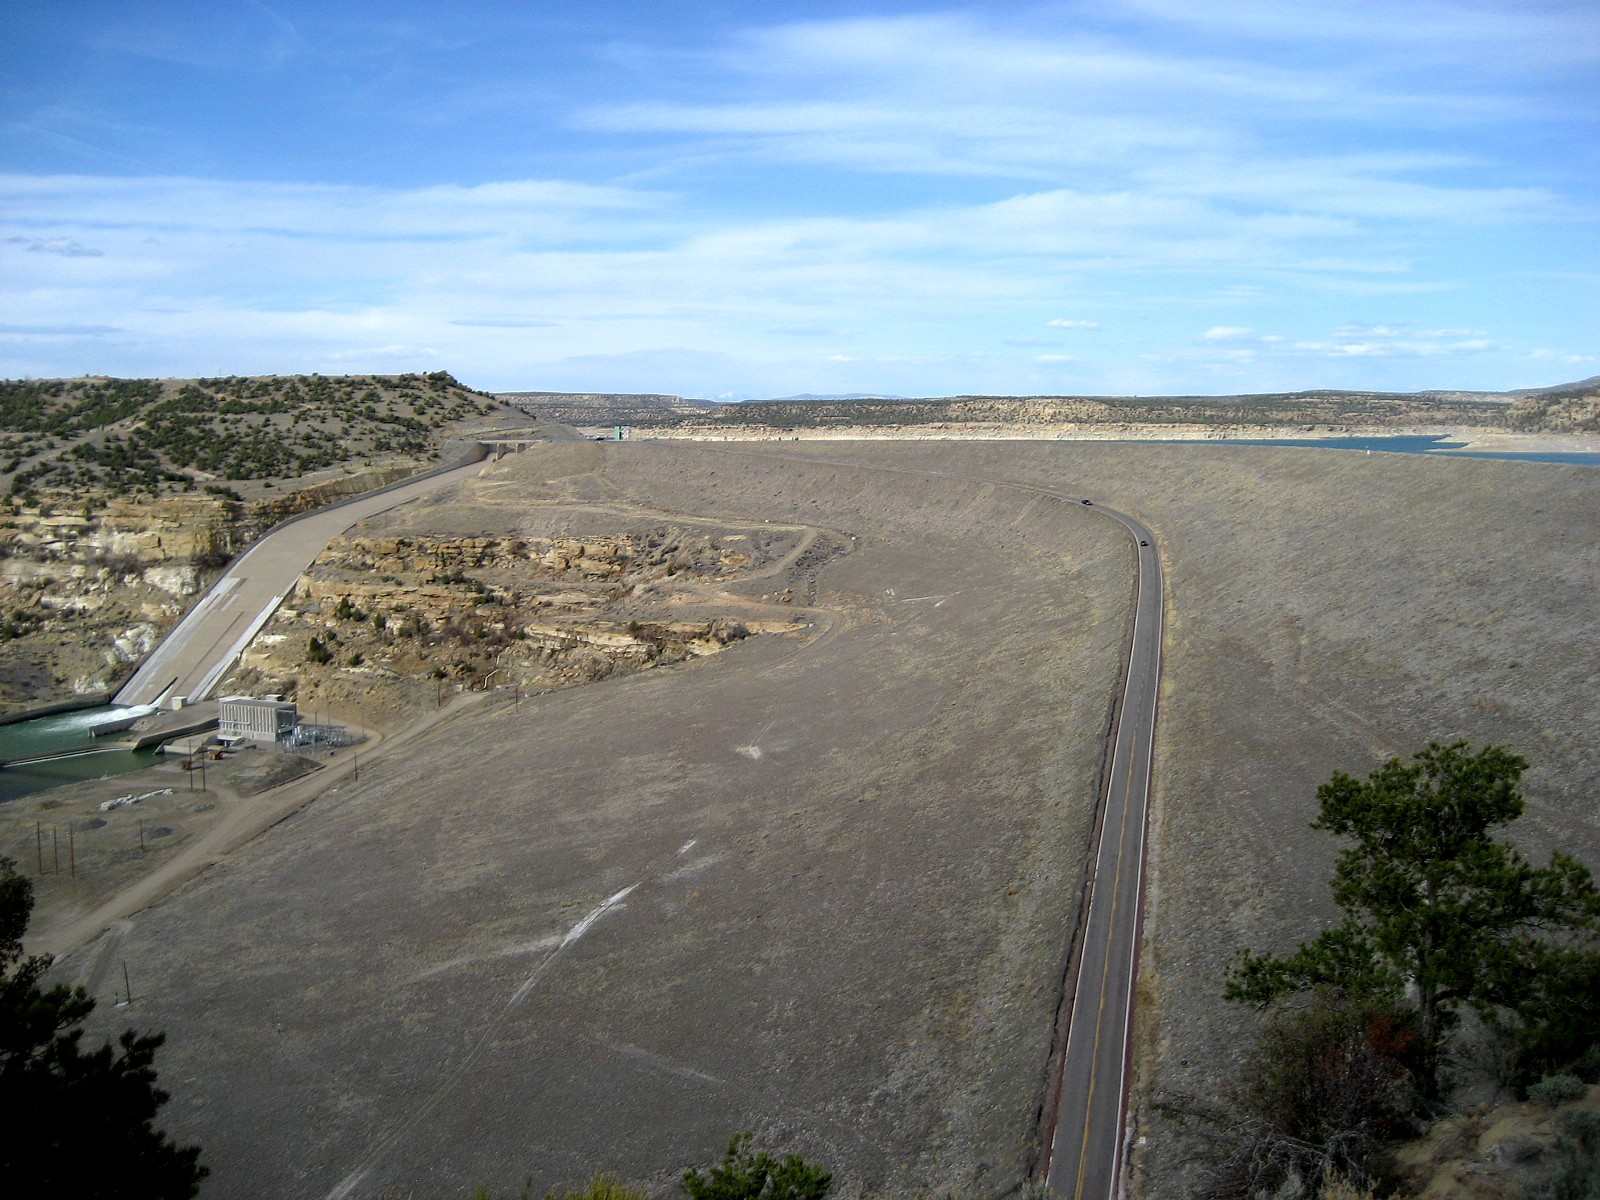 navajo dam catholic singles By analyzing information on thousands of single family homes for sale in navajo dam, new mexico and across the united states, we calculate home values (zestimates) and the zillow home value price index for navajo dam proper, its neighborhoods and surrounding areas.